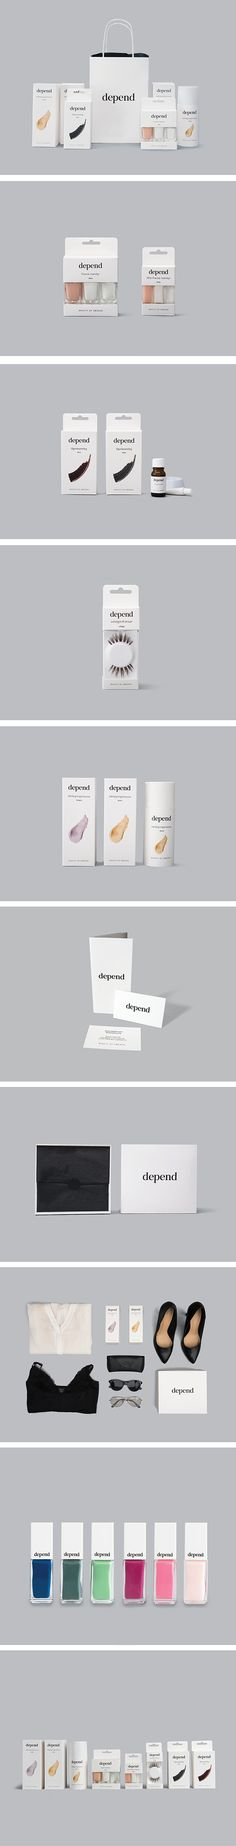 A redesign of Depend Cosmetics AB. Most of Depend's assortment is produced in Sweden, and in our redesign we highlighted this, and focused on a more Scandinavian approach to the design. This makes Depend a more authentic and honest brand with a timeless look that opens up towards an further international expansion. By: Sandra Kristensson, Emily Karlsson and Marie Hjalmarsson. #depend #dependcosmetics #redesign #beauty #sweden #packagingdesign #branding #studentwork #brobygrafiska #nailpolish